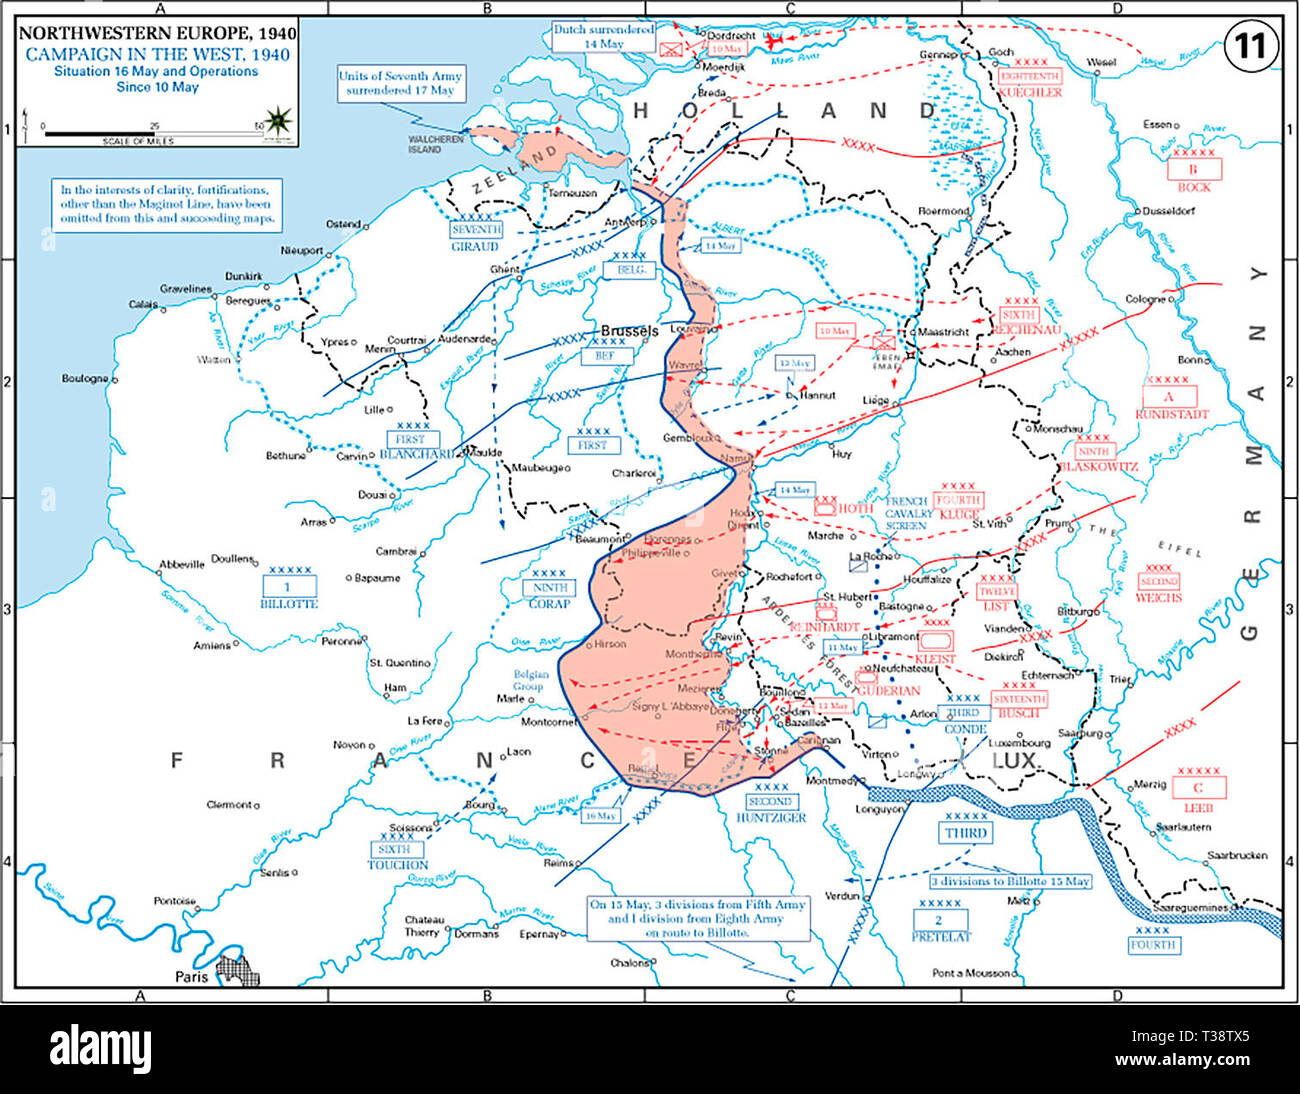 The German advance until noon, 16 May 1940. The map also reveals the dispositions of the Belgian Army and its allies. - Stock Image